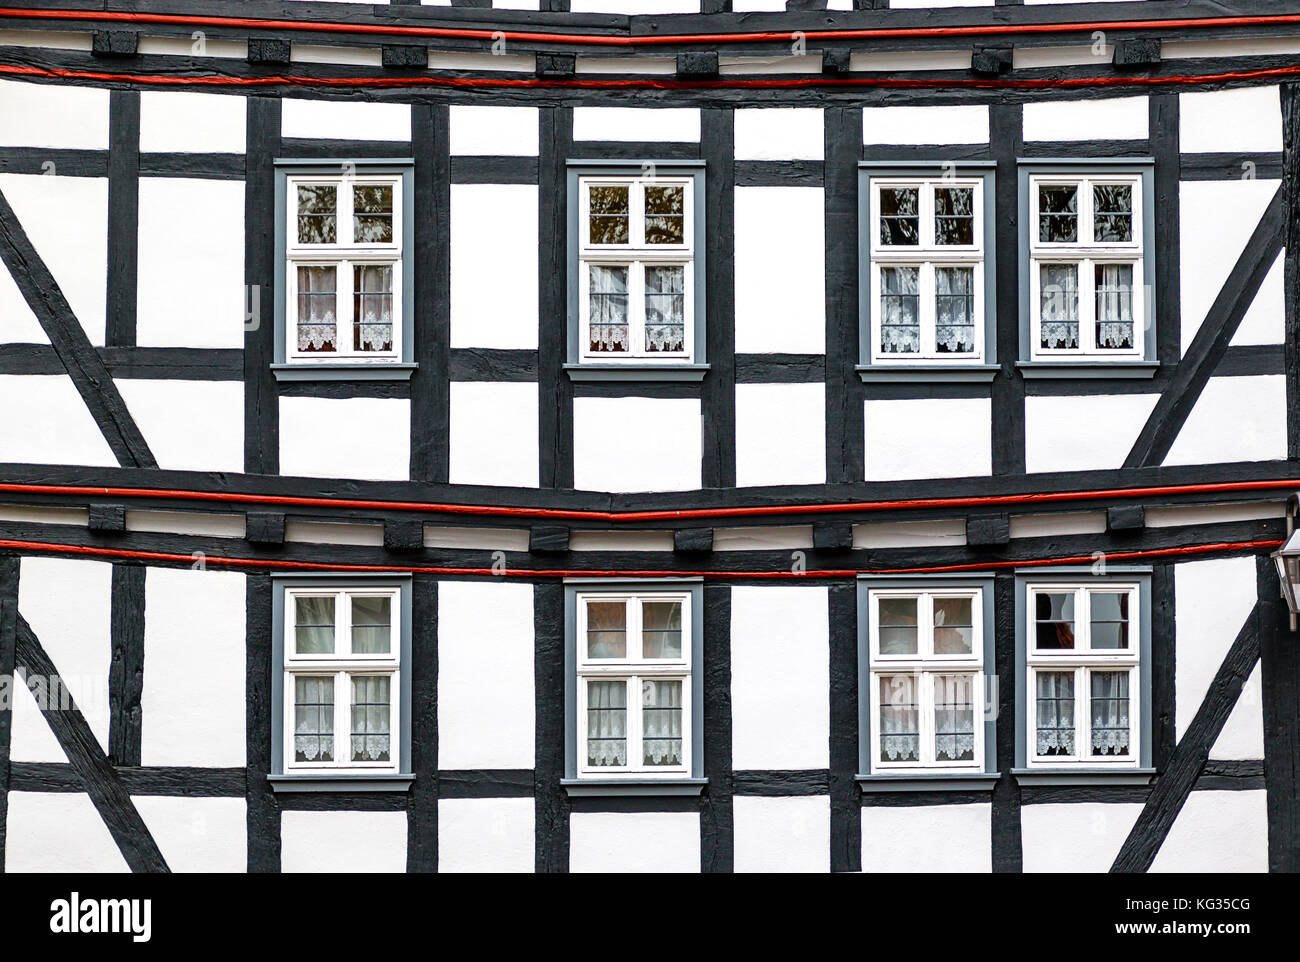 Historic black-and-white half-timbered house in medieval small town of Schlitz Vogelsberg, Germany - Stock Image